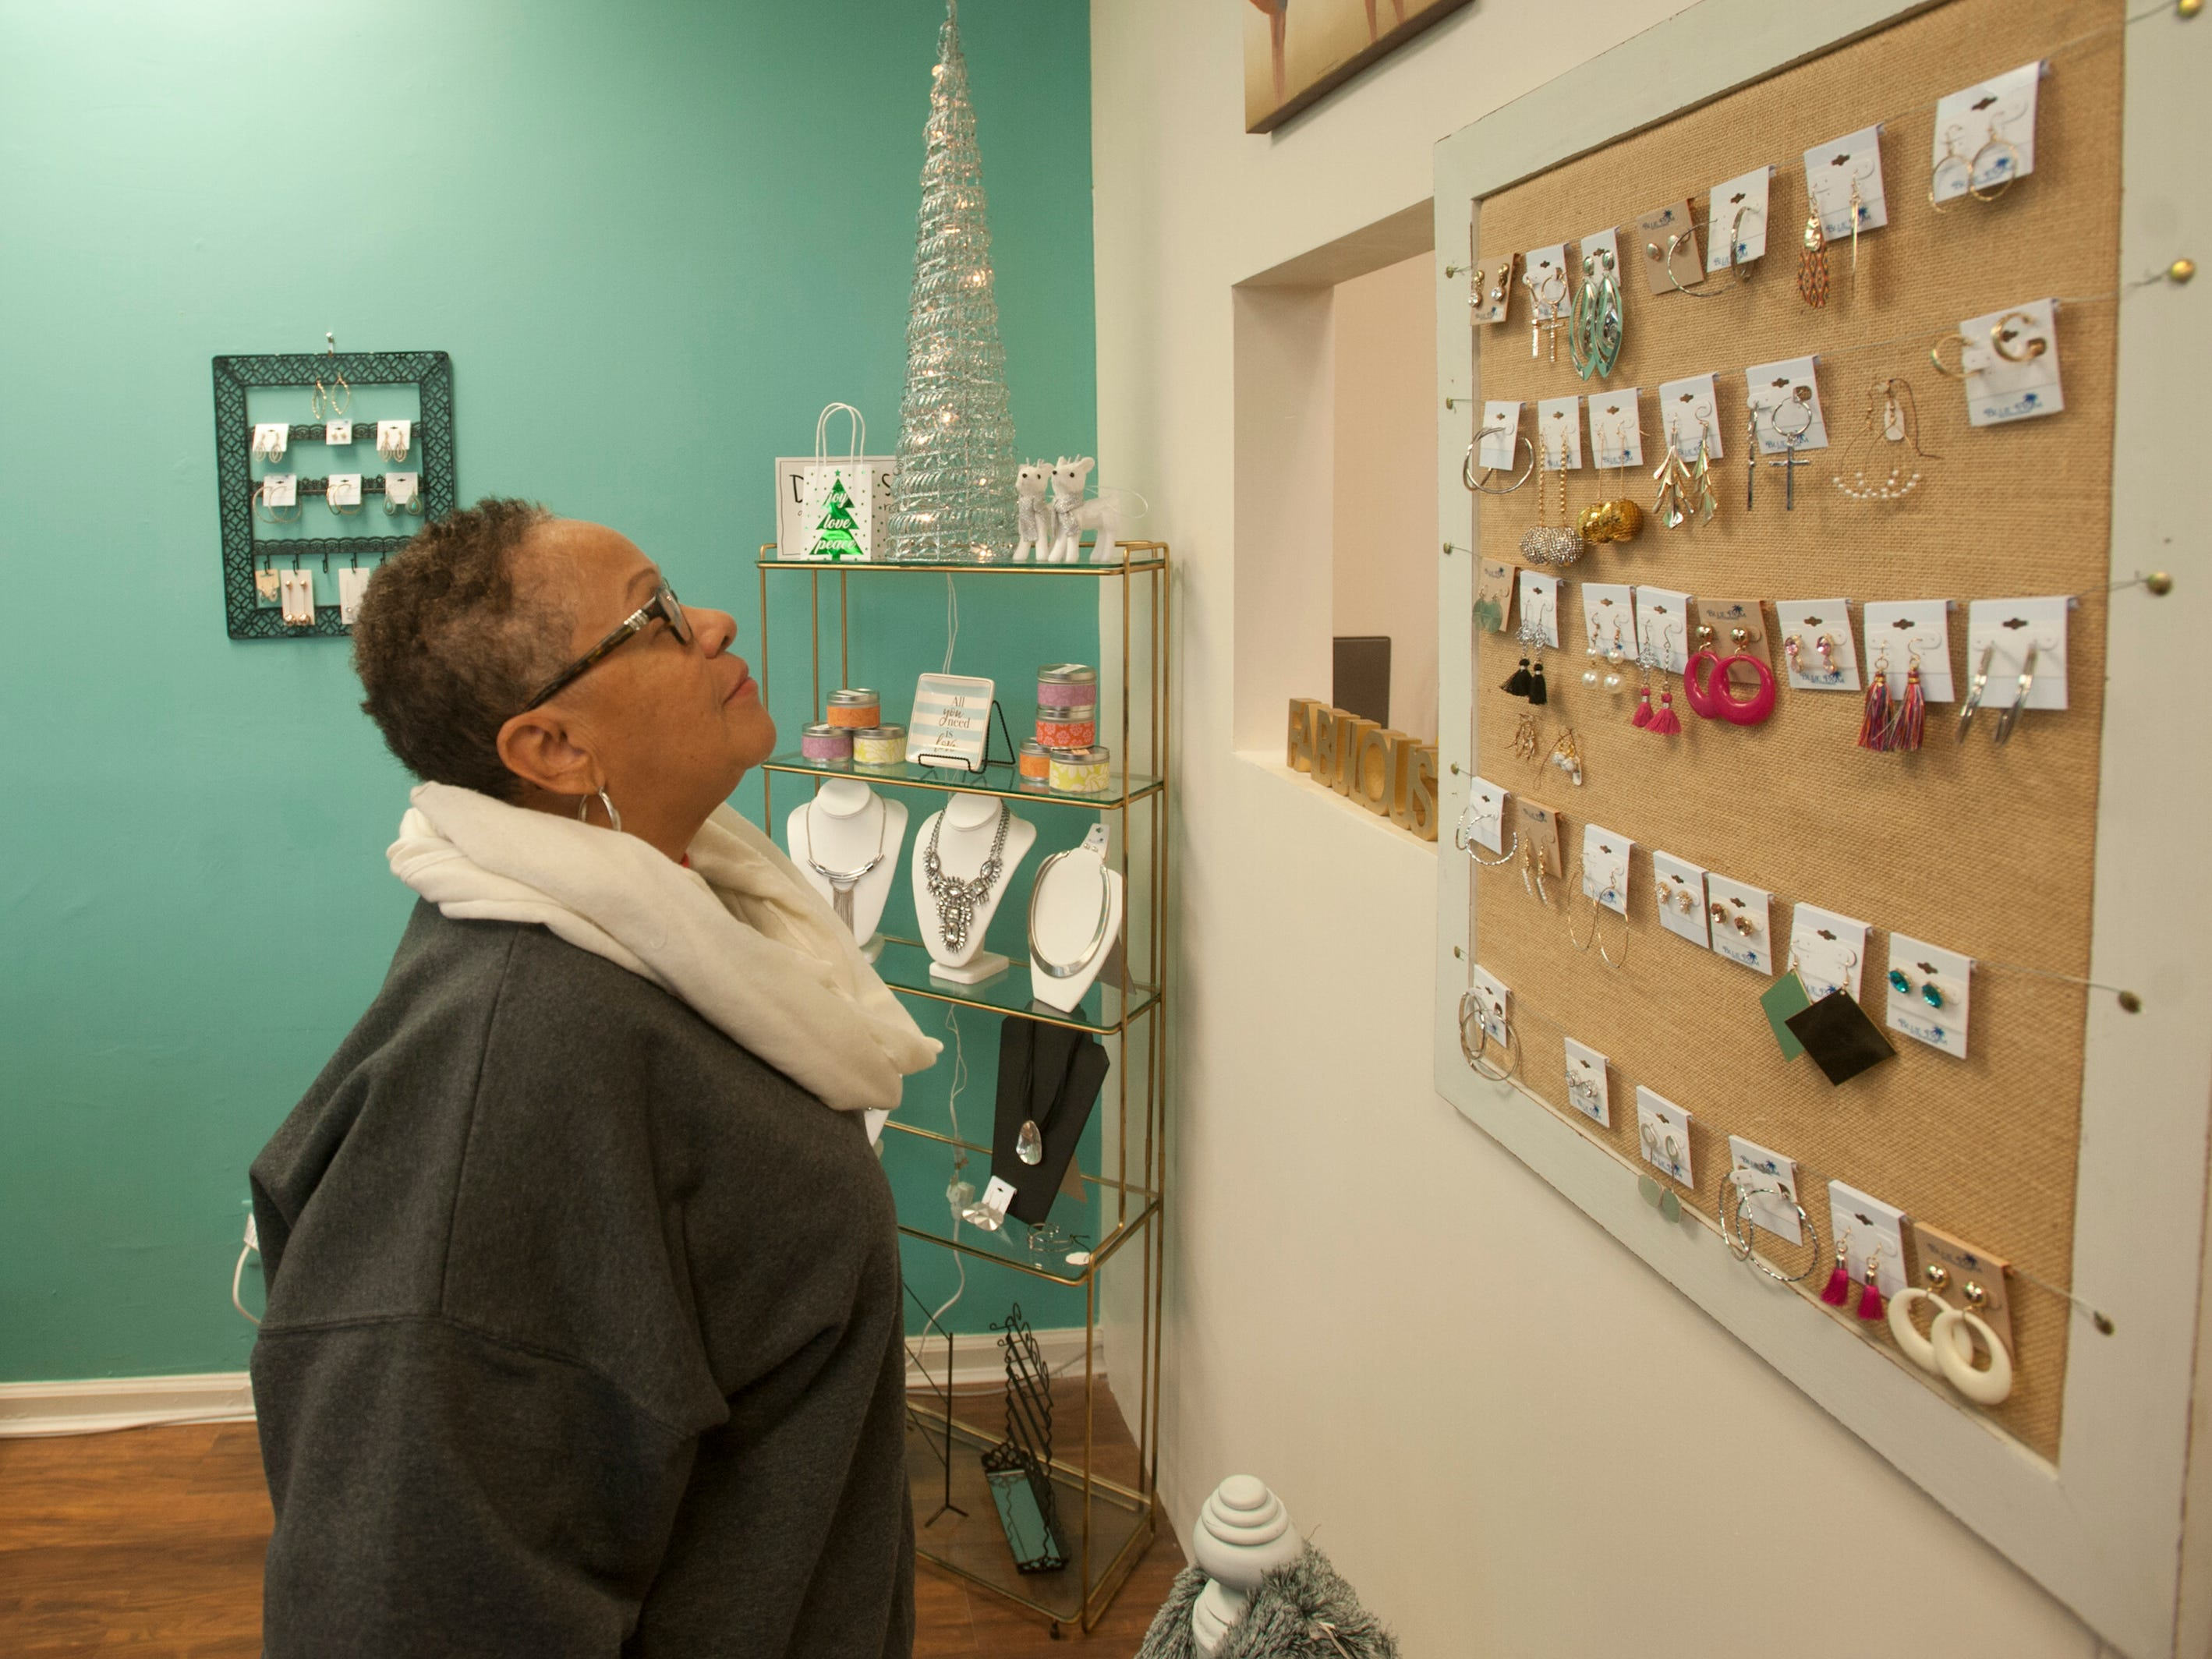 Karen Porter of the Shawnee neighborhood checks out some earrings at Blue Palm Accessories, a women's boutique at 2001 W. Broadway, as part of Louisville's Small Business Saturday. 24 November 2018